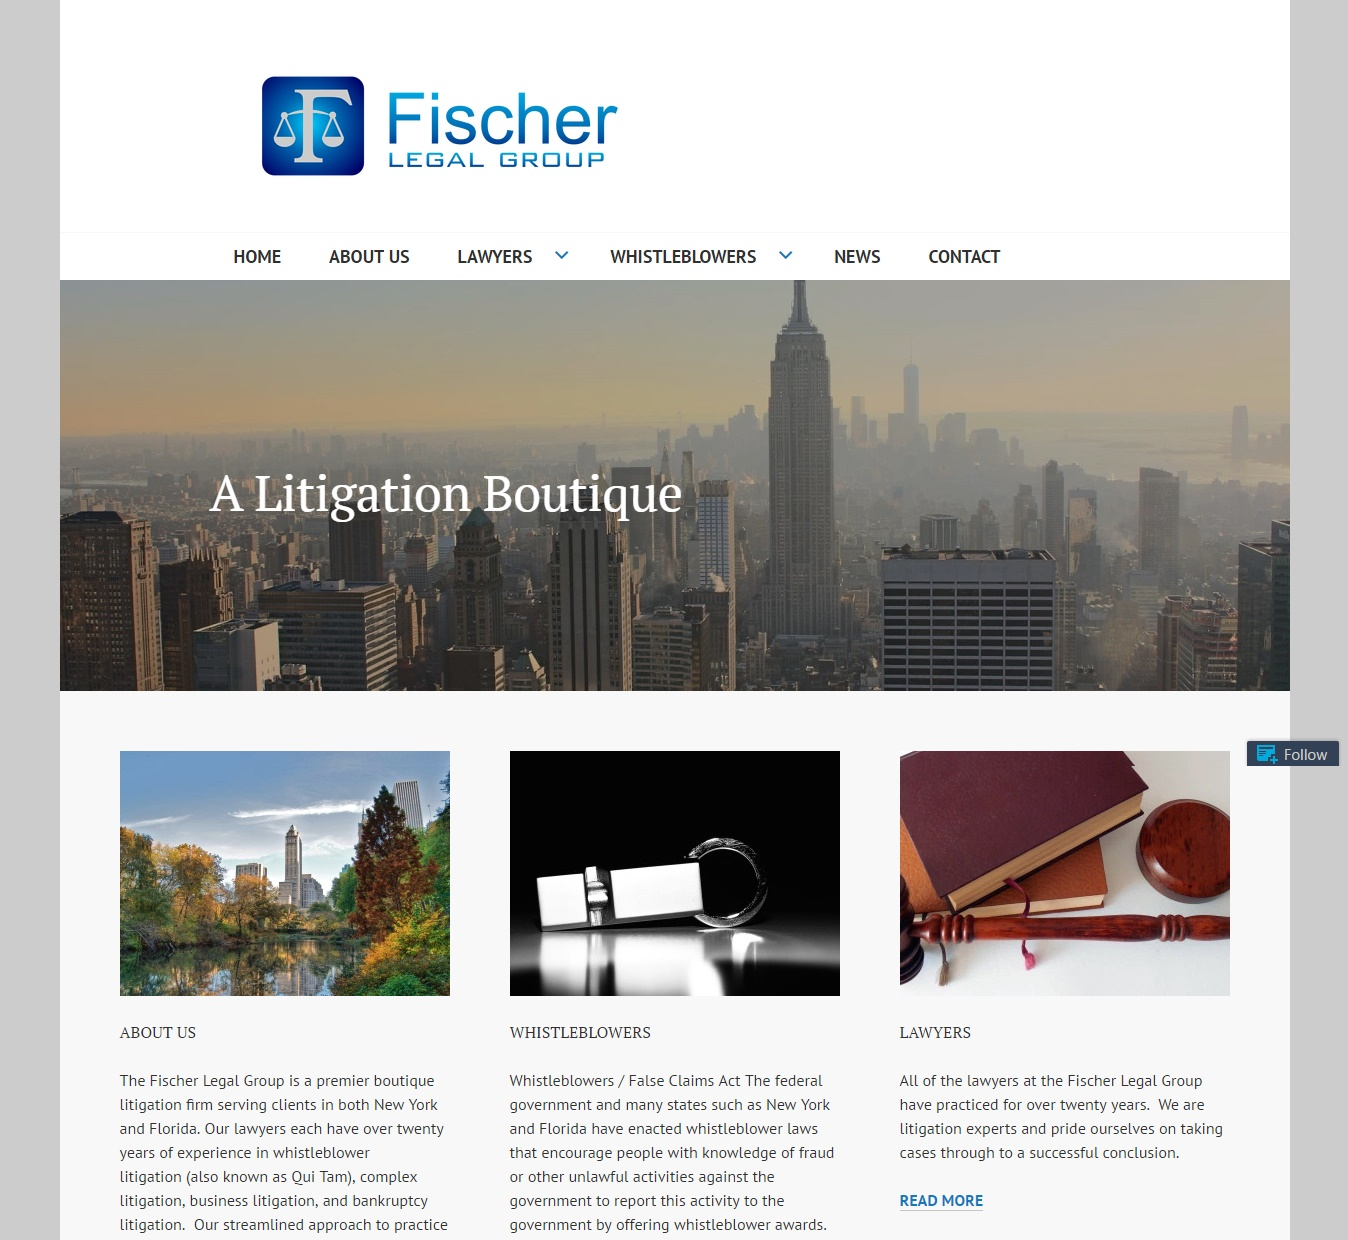 Fischer Legal Group Image